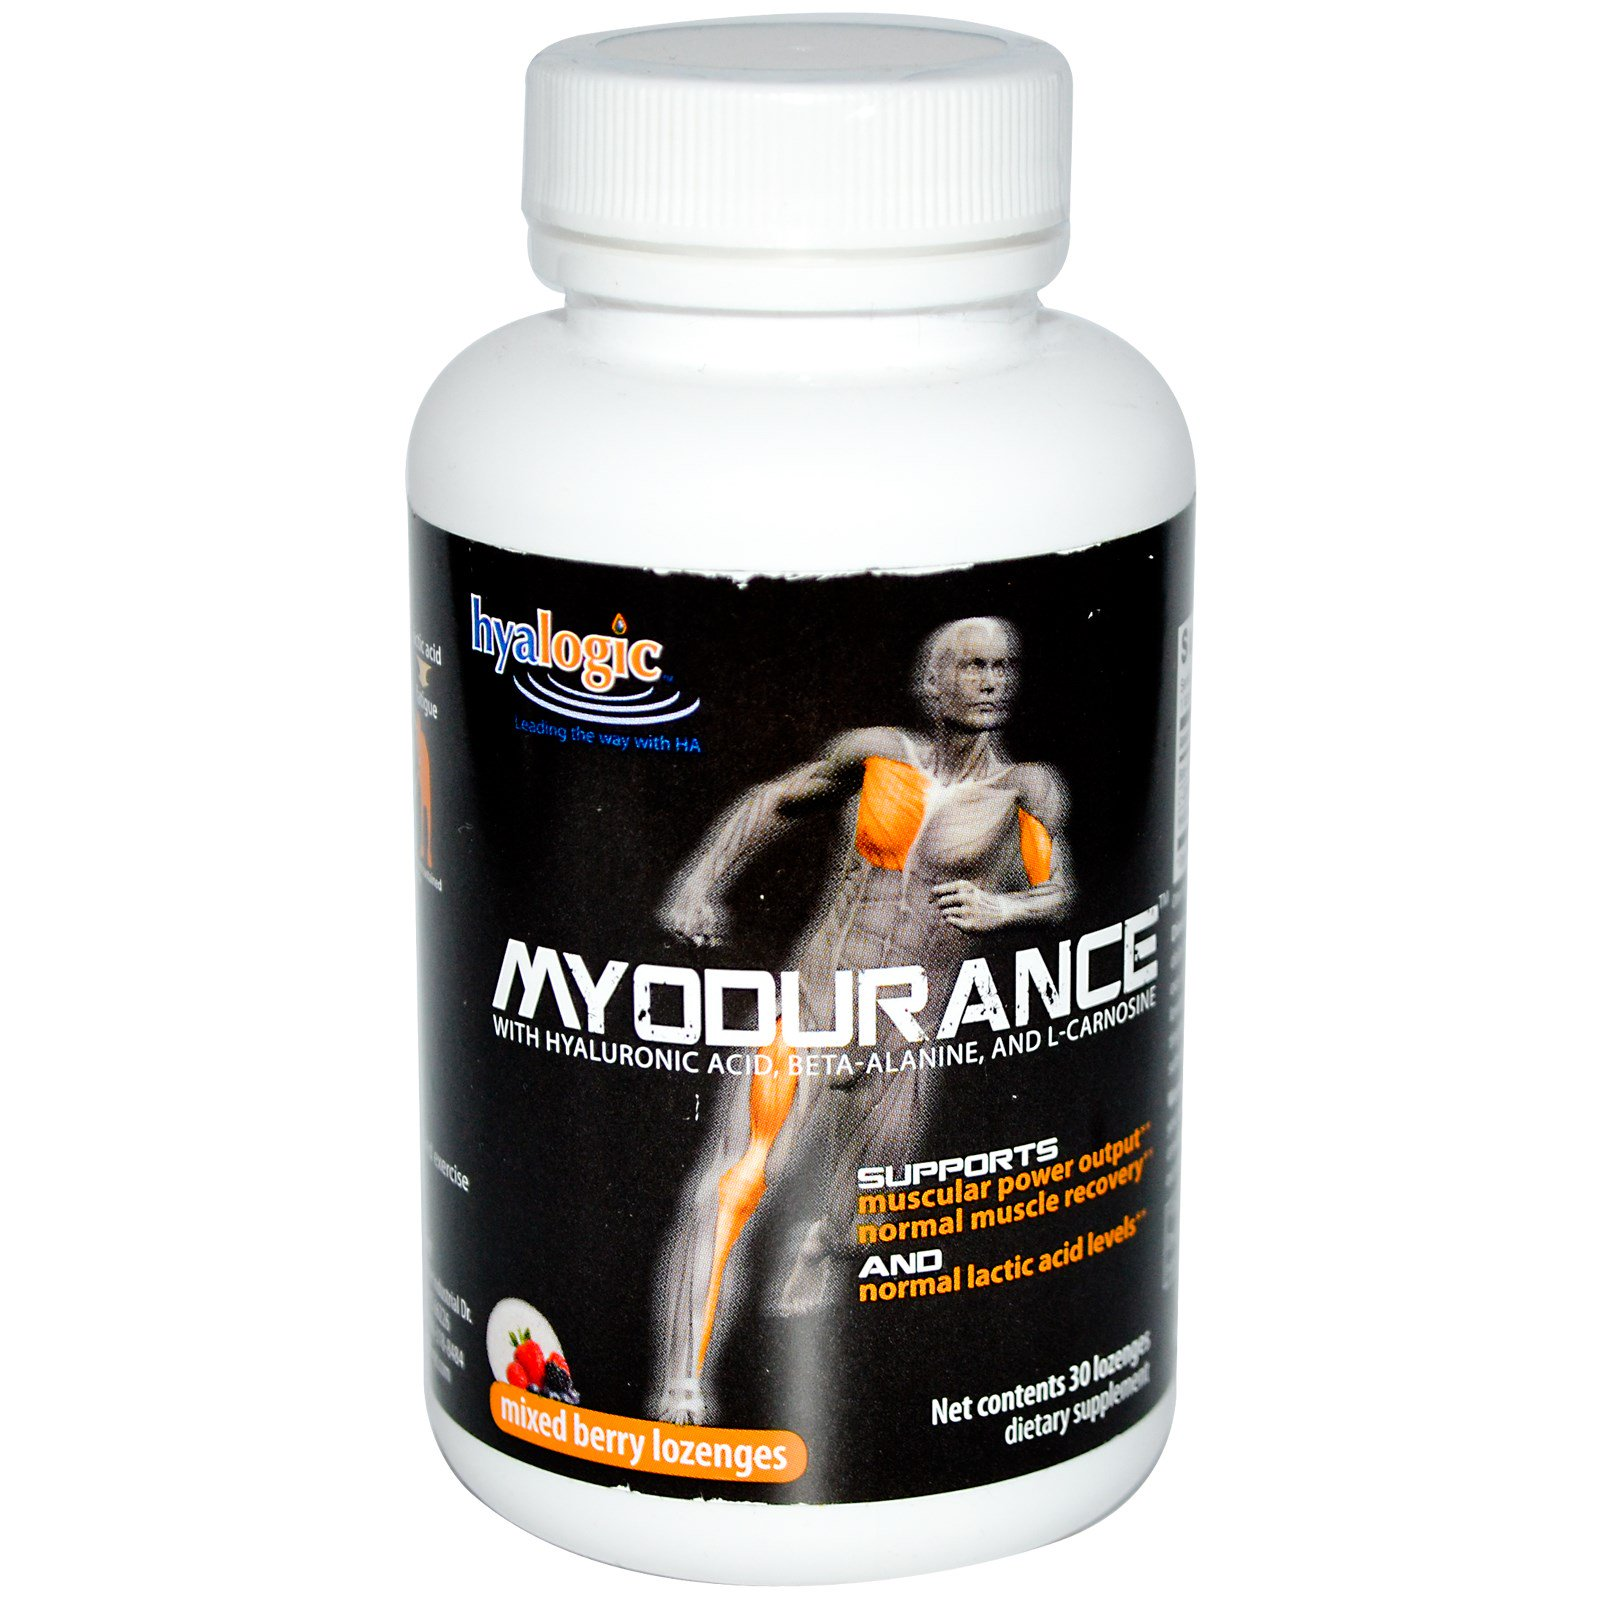 Hyalogic LLC, Myodurance with Hyaluronic Acid, Beta-Alanine, and  L-Carnosine, Mixed Berry, 30 Lozenges (Discontinued Item)